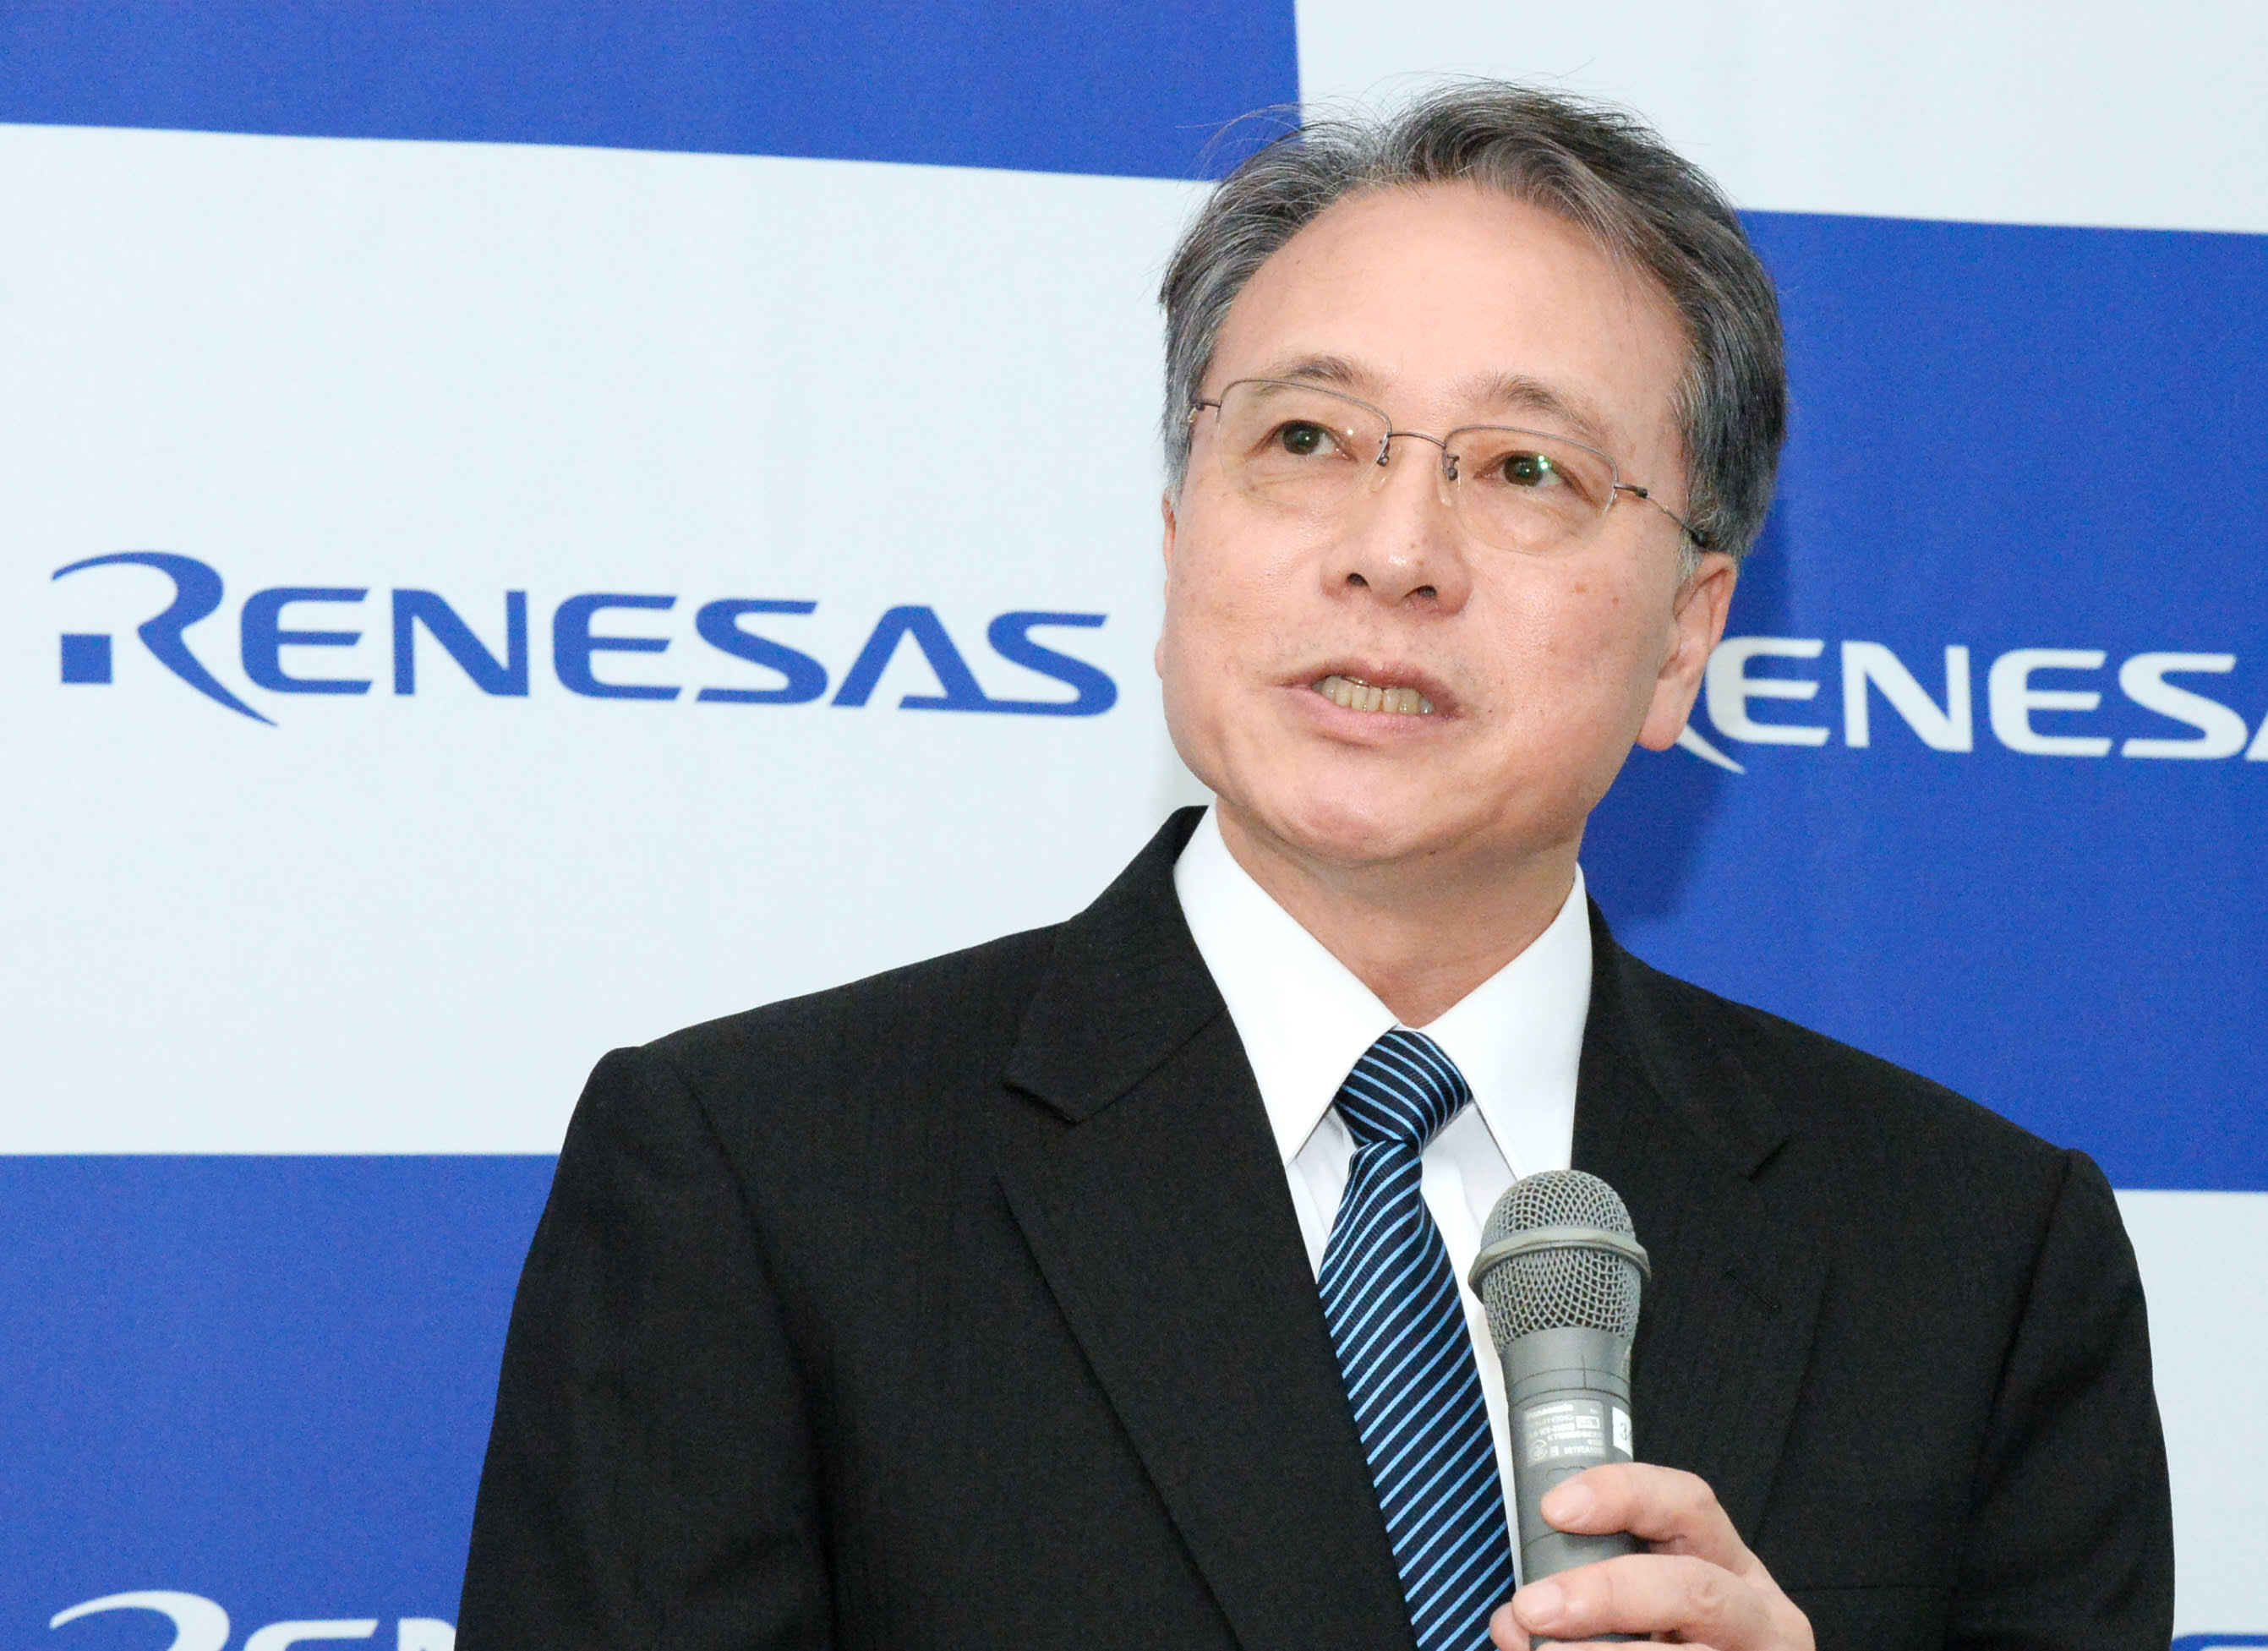 Renesas CEO leaves three months after being re-appointed